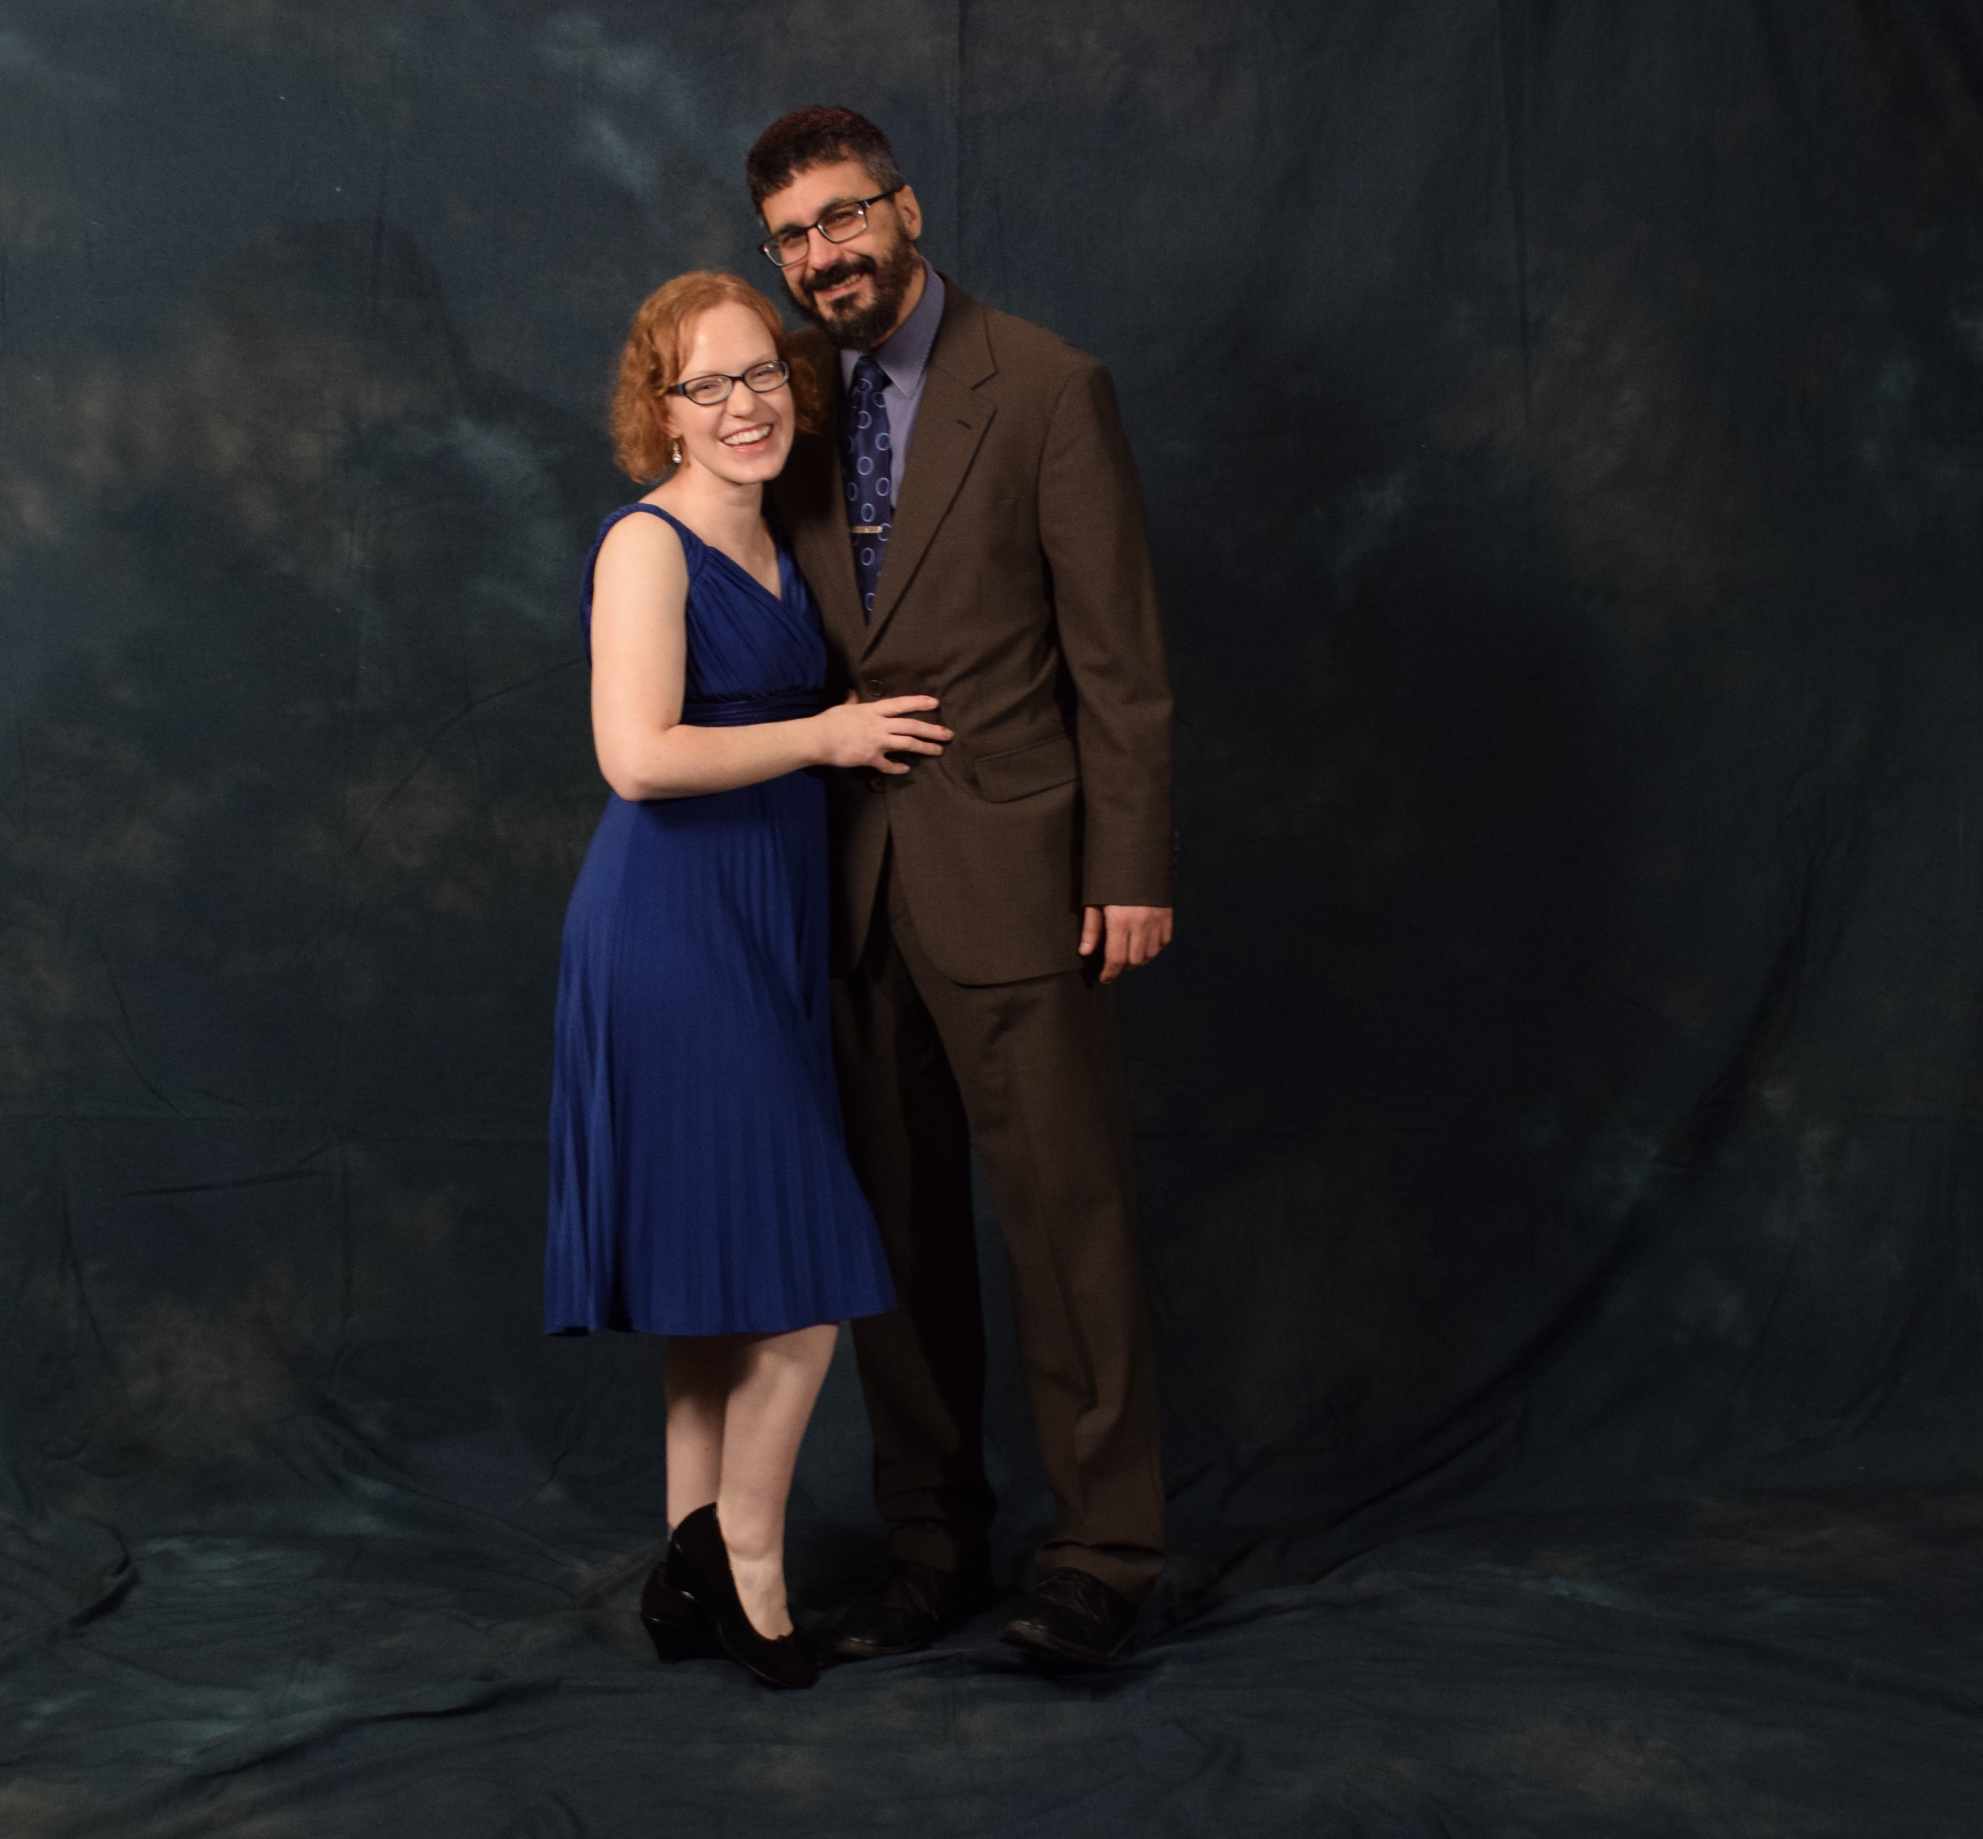 """Jennifer Buckscott and Chris Peloso.  Buckscott said her dress, which she bought before having her daughter, """"magically zipped up."""" Peloso's suit is from Brooks Brothers. (Photo by Skip Gray/KTOO)"""